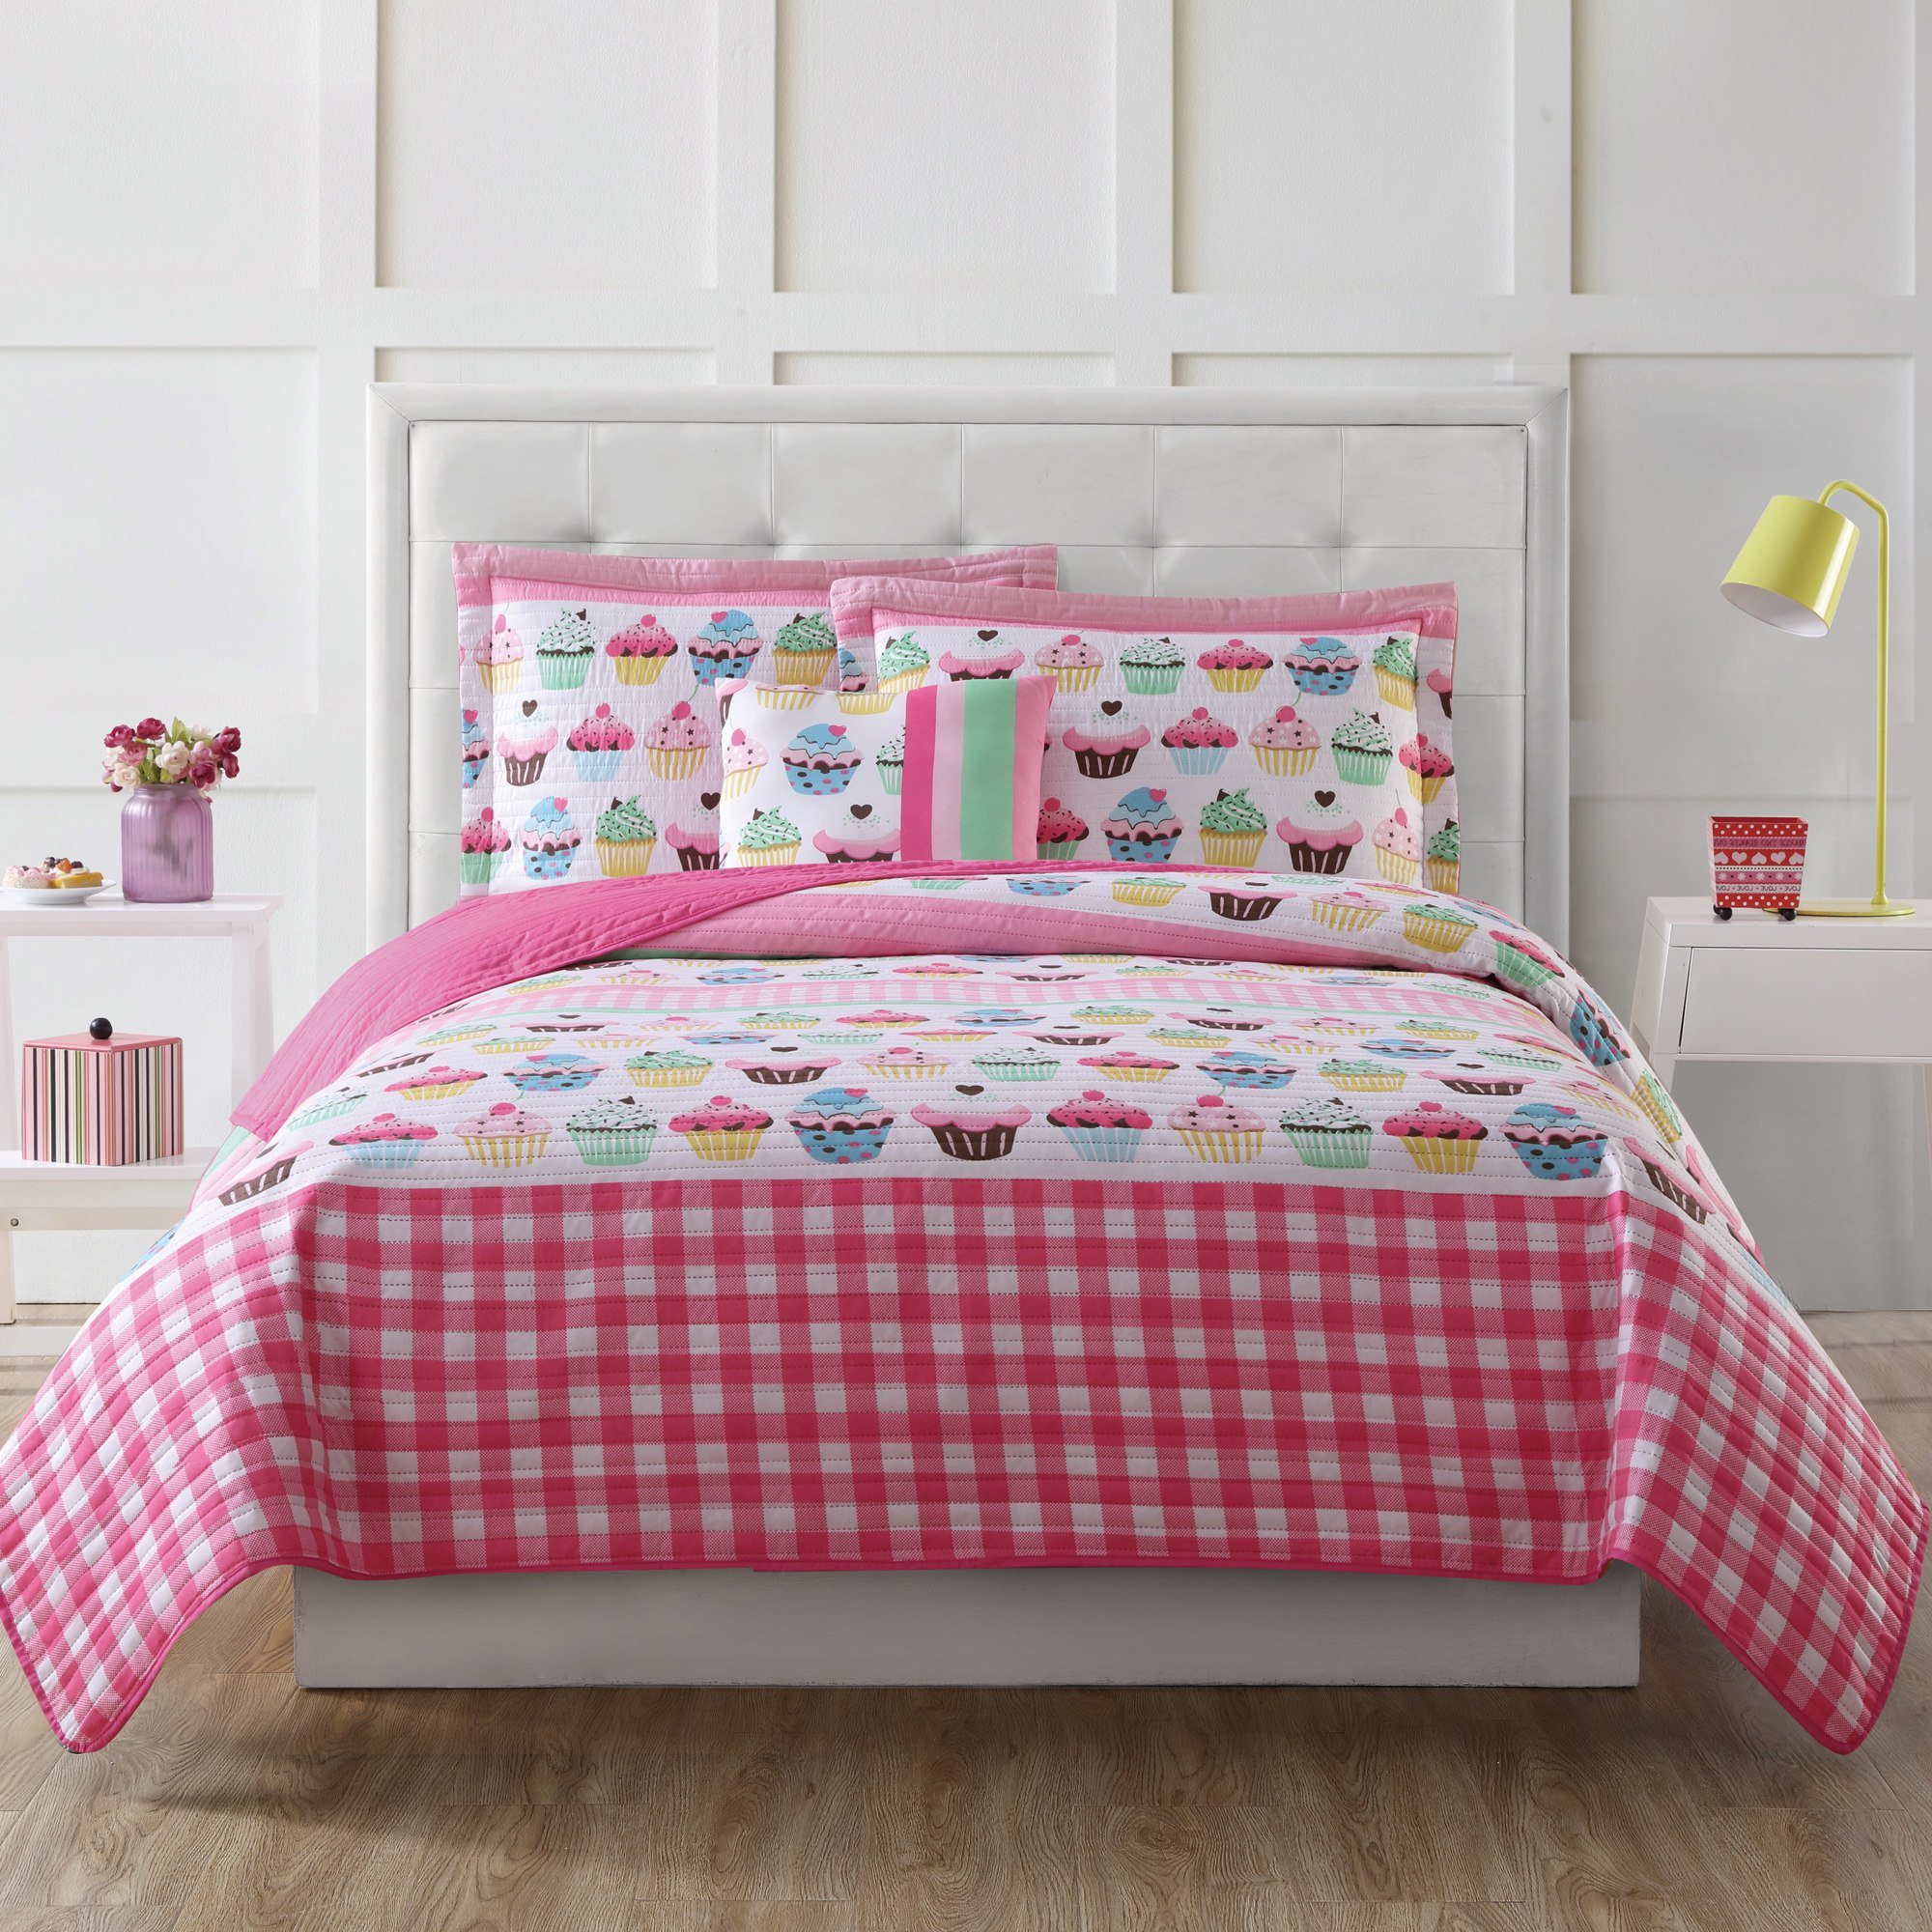 4 Piece Kids Pink Cupcake Theme FULL SIZED Quilt Set, Plaid Cup Cake Graphic Print Stripes Pattern Bedding,Cabin Lodge Checkered Chocolate Vanilla Raspberry Cake Unique Trendy Sleek Style,Microfiber